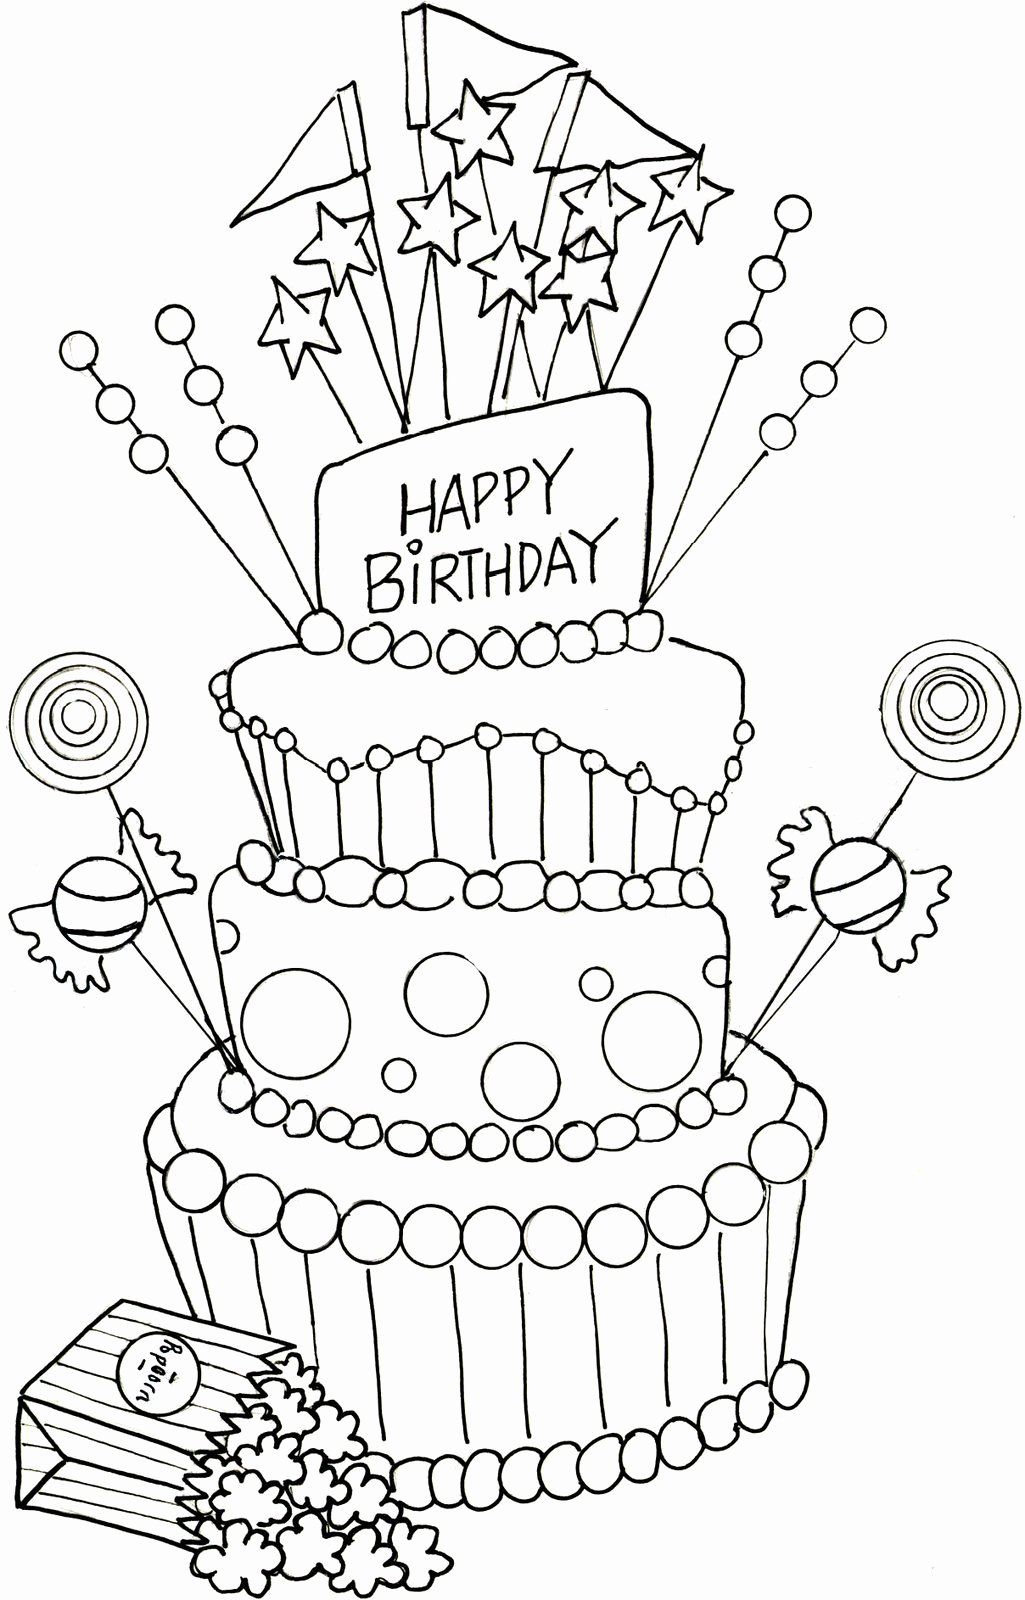 Birthday Cakes Coloring Pages Inspirational Coloring Pages 56 Incredible Happy Bi Happy Birthday Coloring Pages Birthday Coloring Pages Happy Birthday Drawings